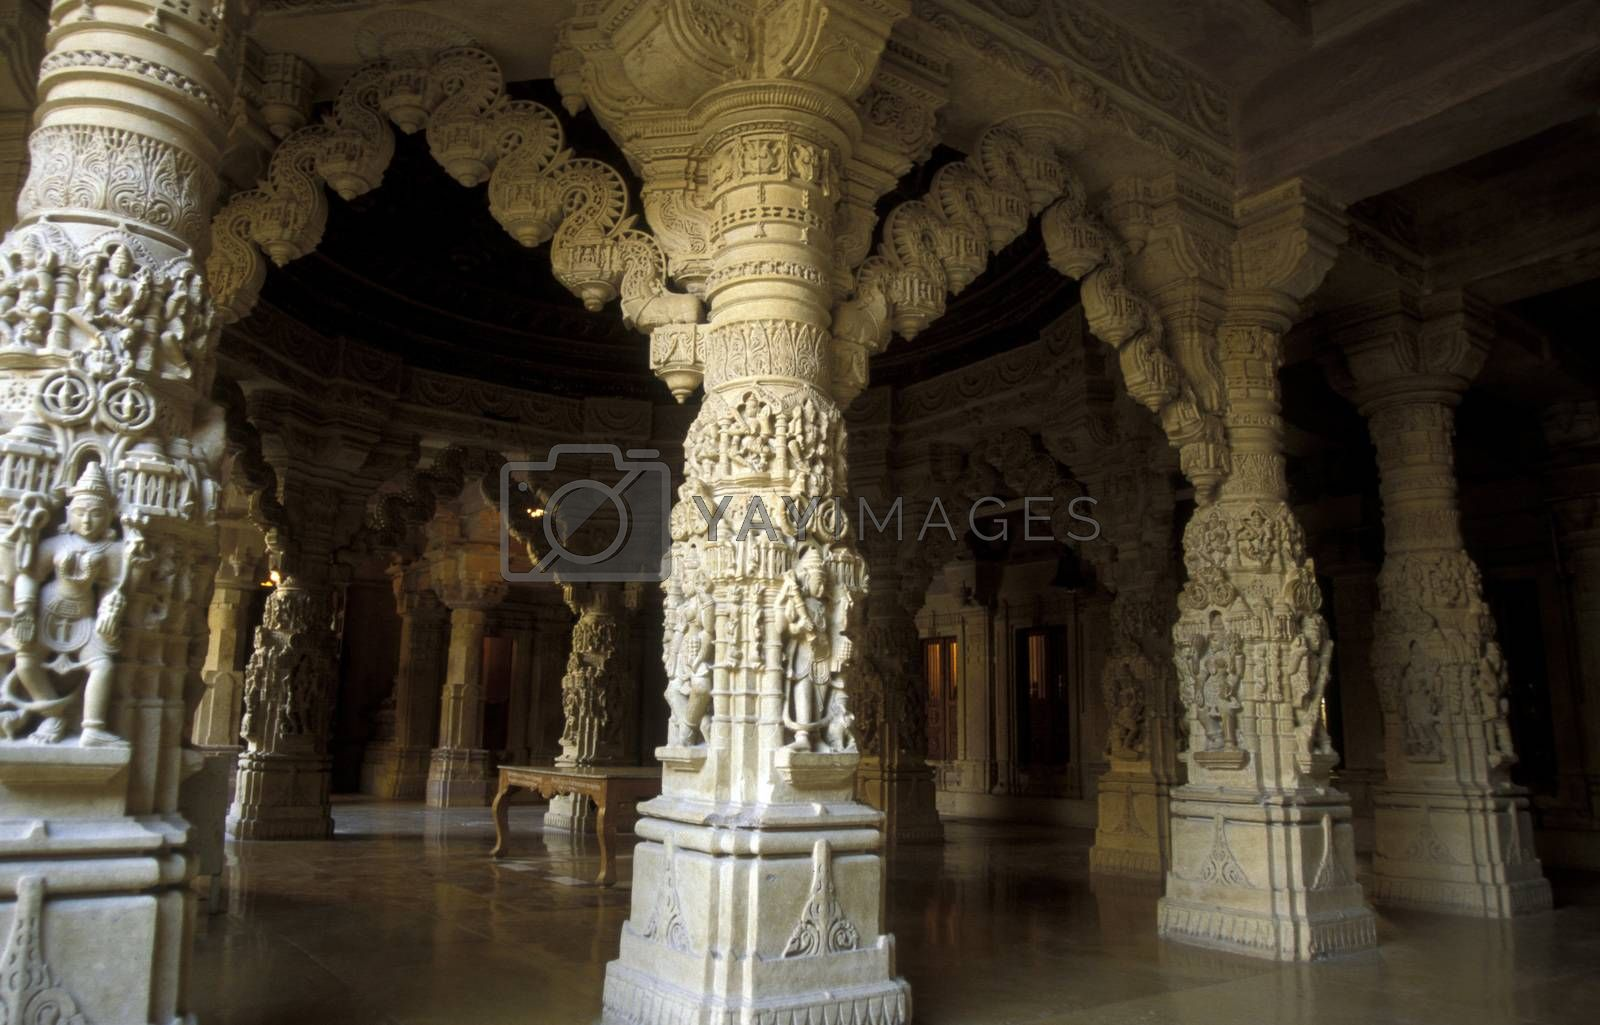 the inside of the Maharadja  Palace in the town of Jaisalmer in the province of Rajasthan in India.